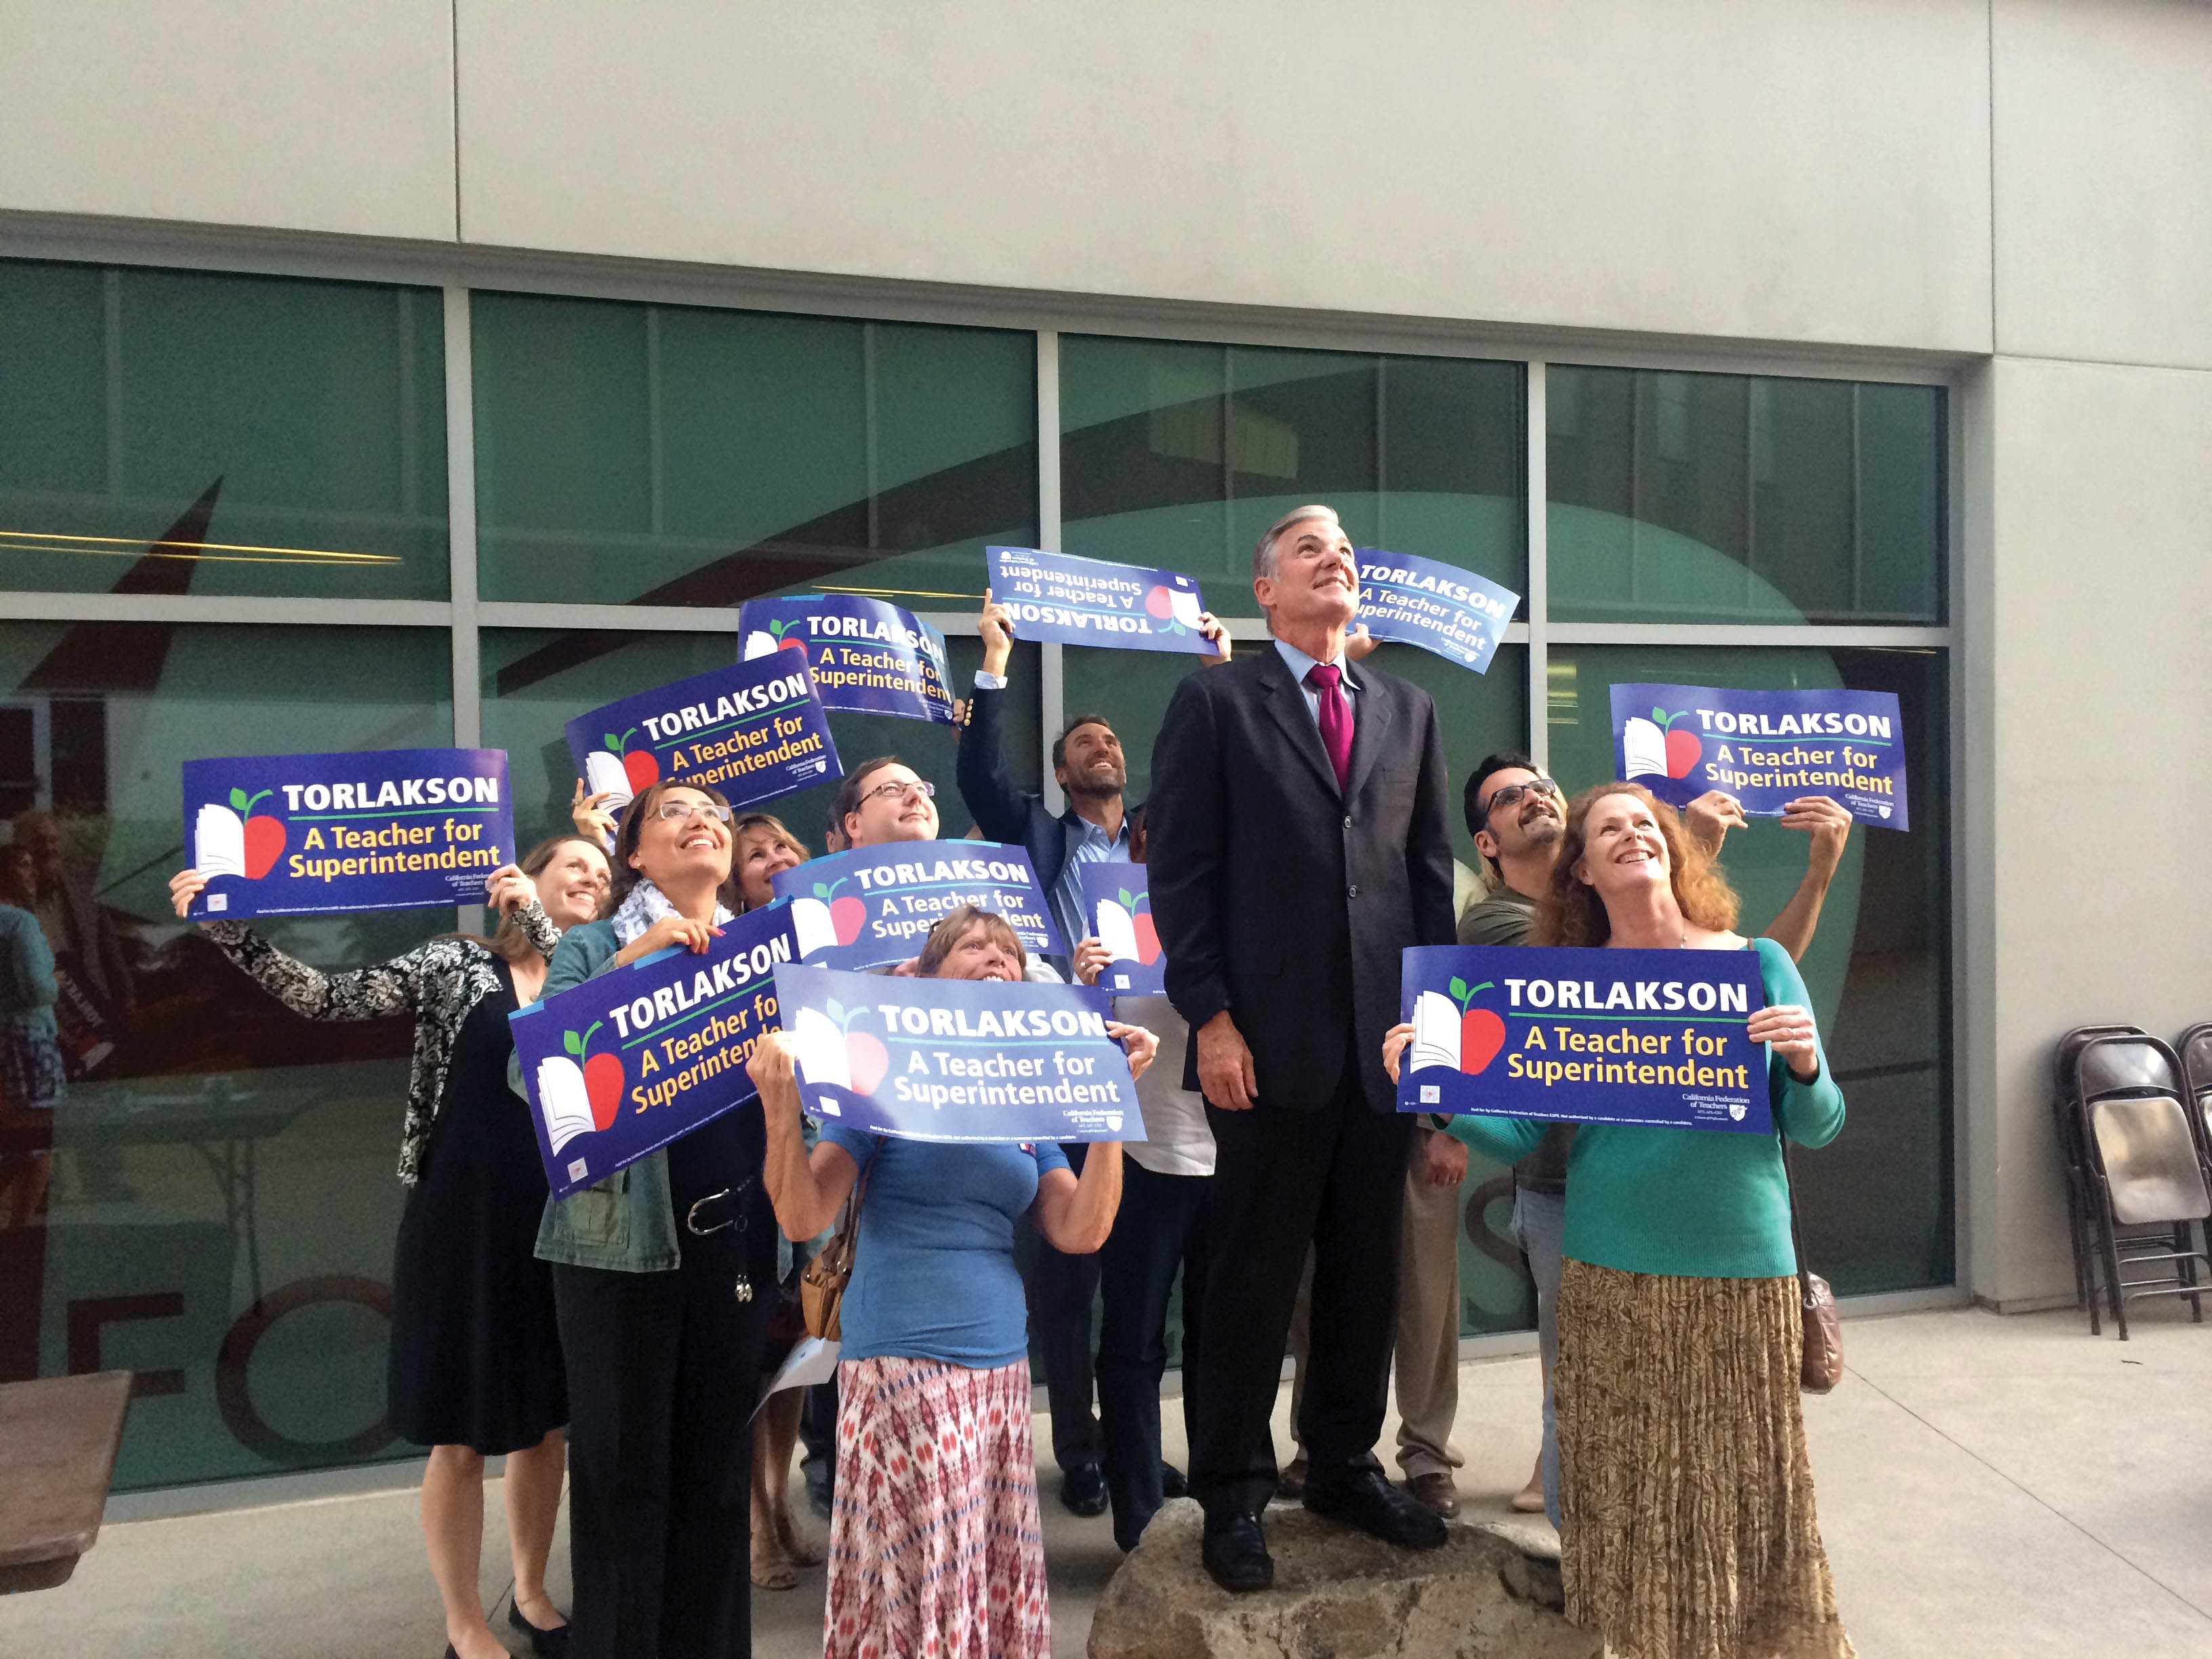 California Superintendent of Public Instruction, Tom Torlakson, who is up for re-election this fall, poses for a few photos with his constituents at Palomar College on Tuesday, Oct 28 • Brian O'Malley/The Telescope